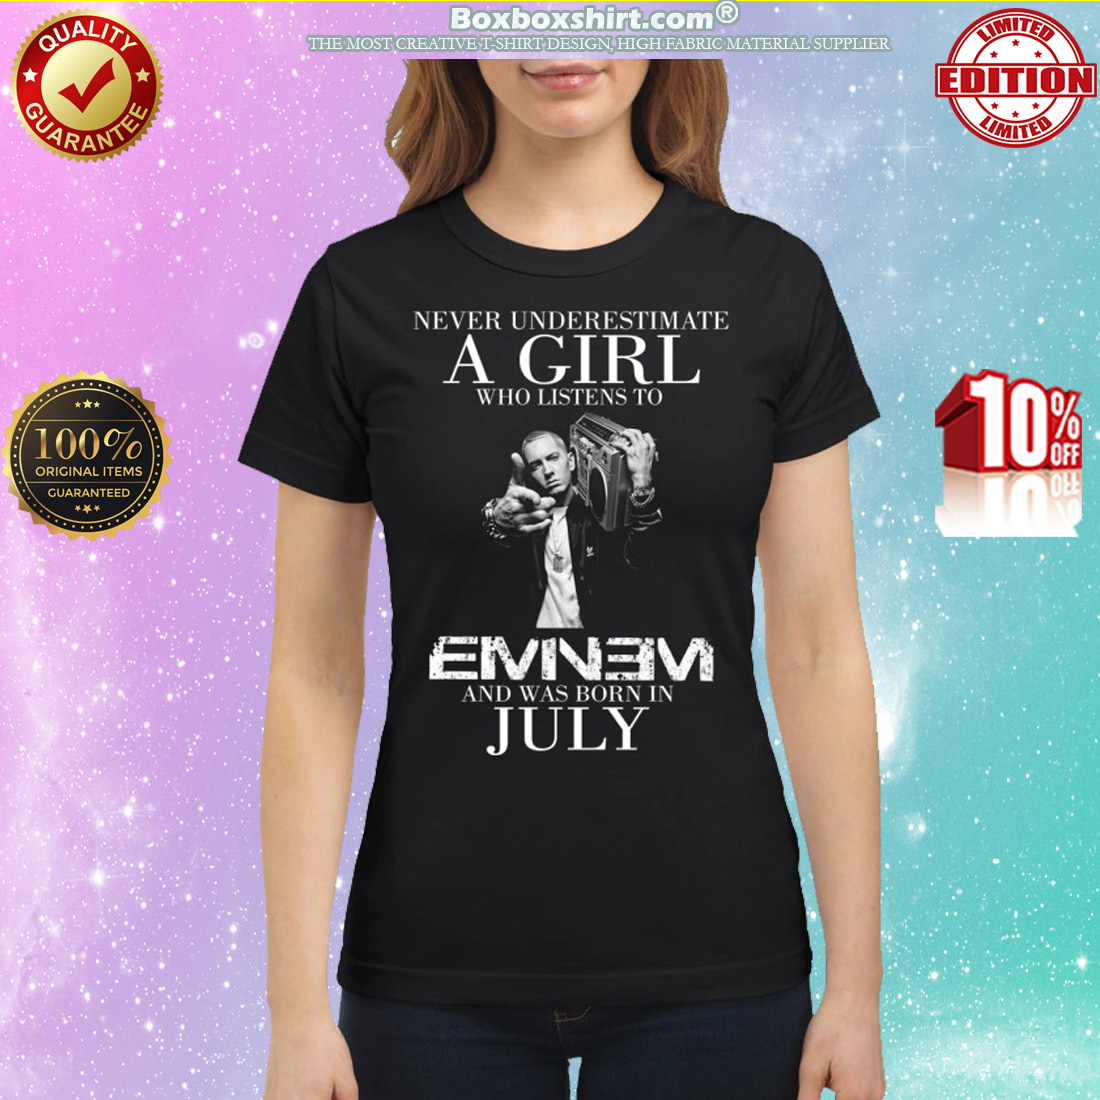 Never underestimate a girl who listens to Eminem and was born in July classic shirt